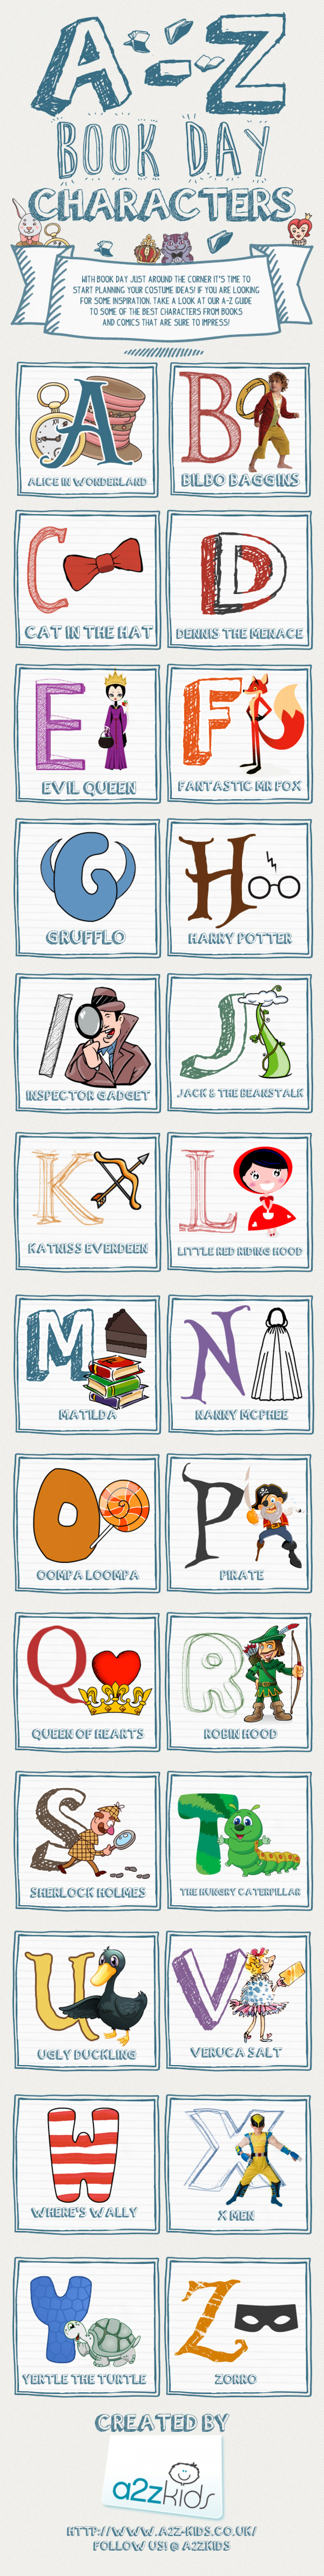 A-Z Book Day Costumes Infographic